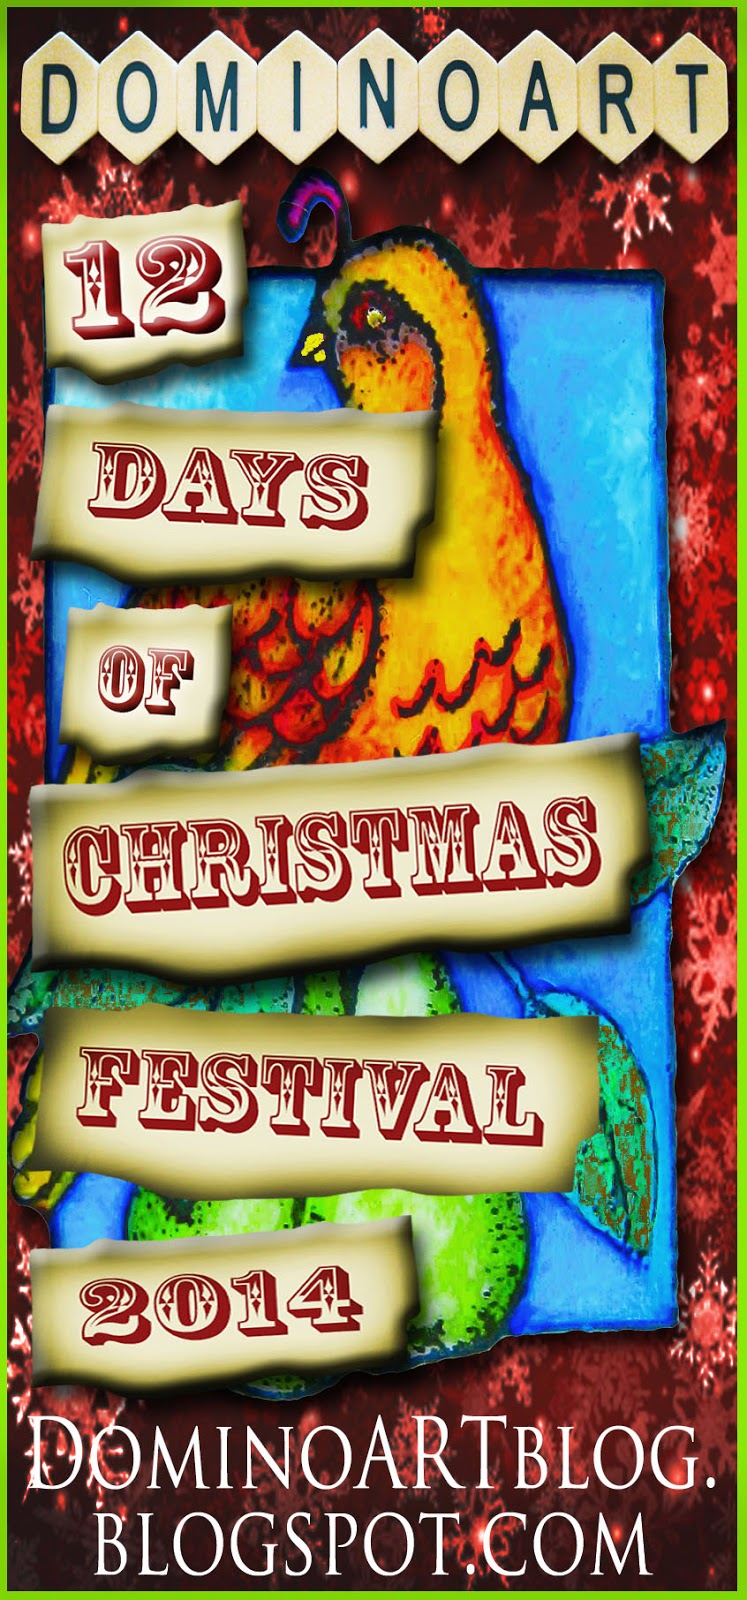 http://dominoartblog.blogspot.com/2014/11/12-days-of-christmas-blog-hop-dominoart.html